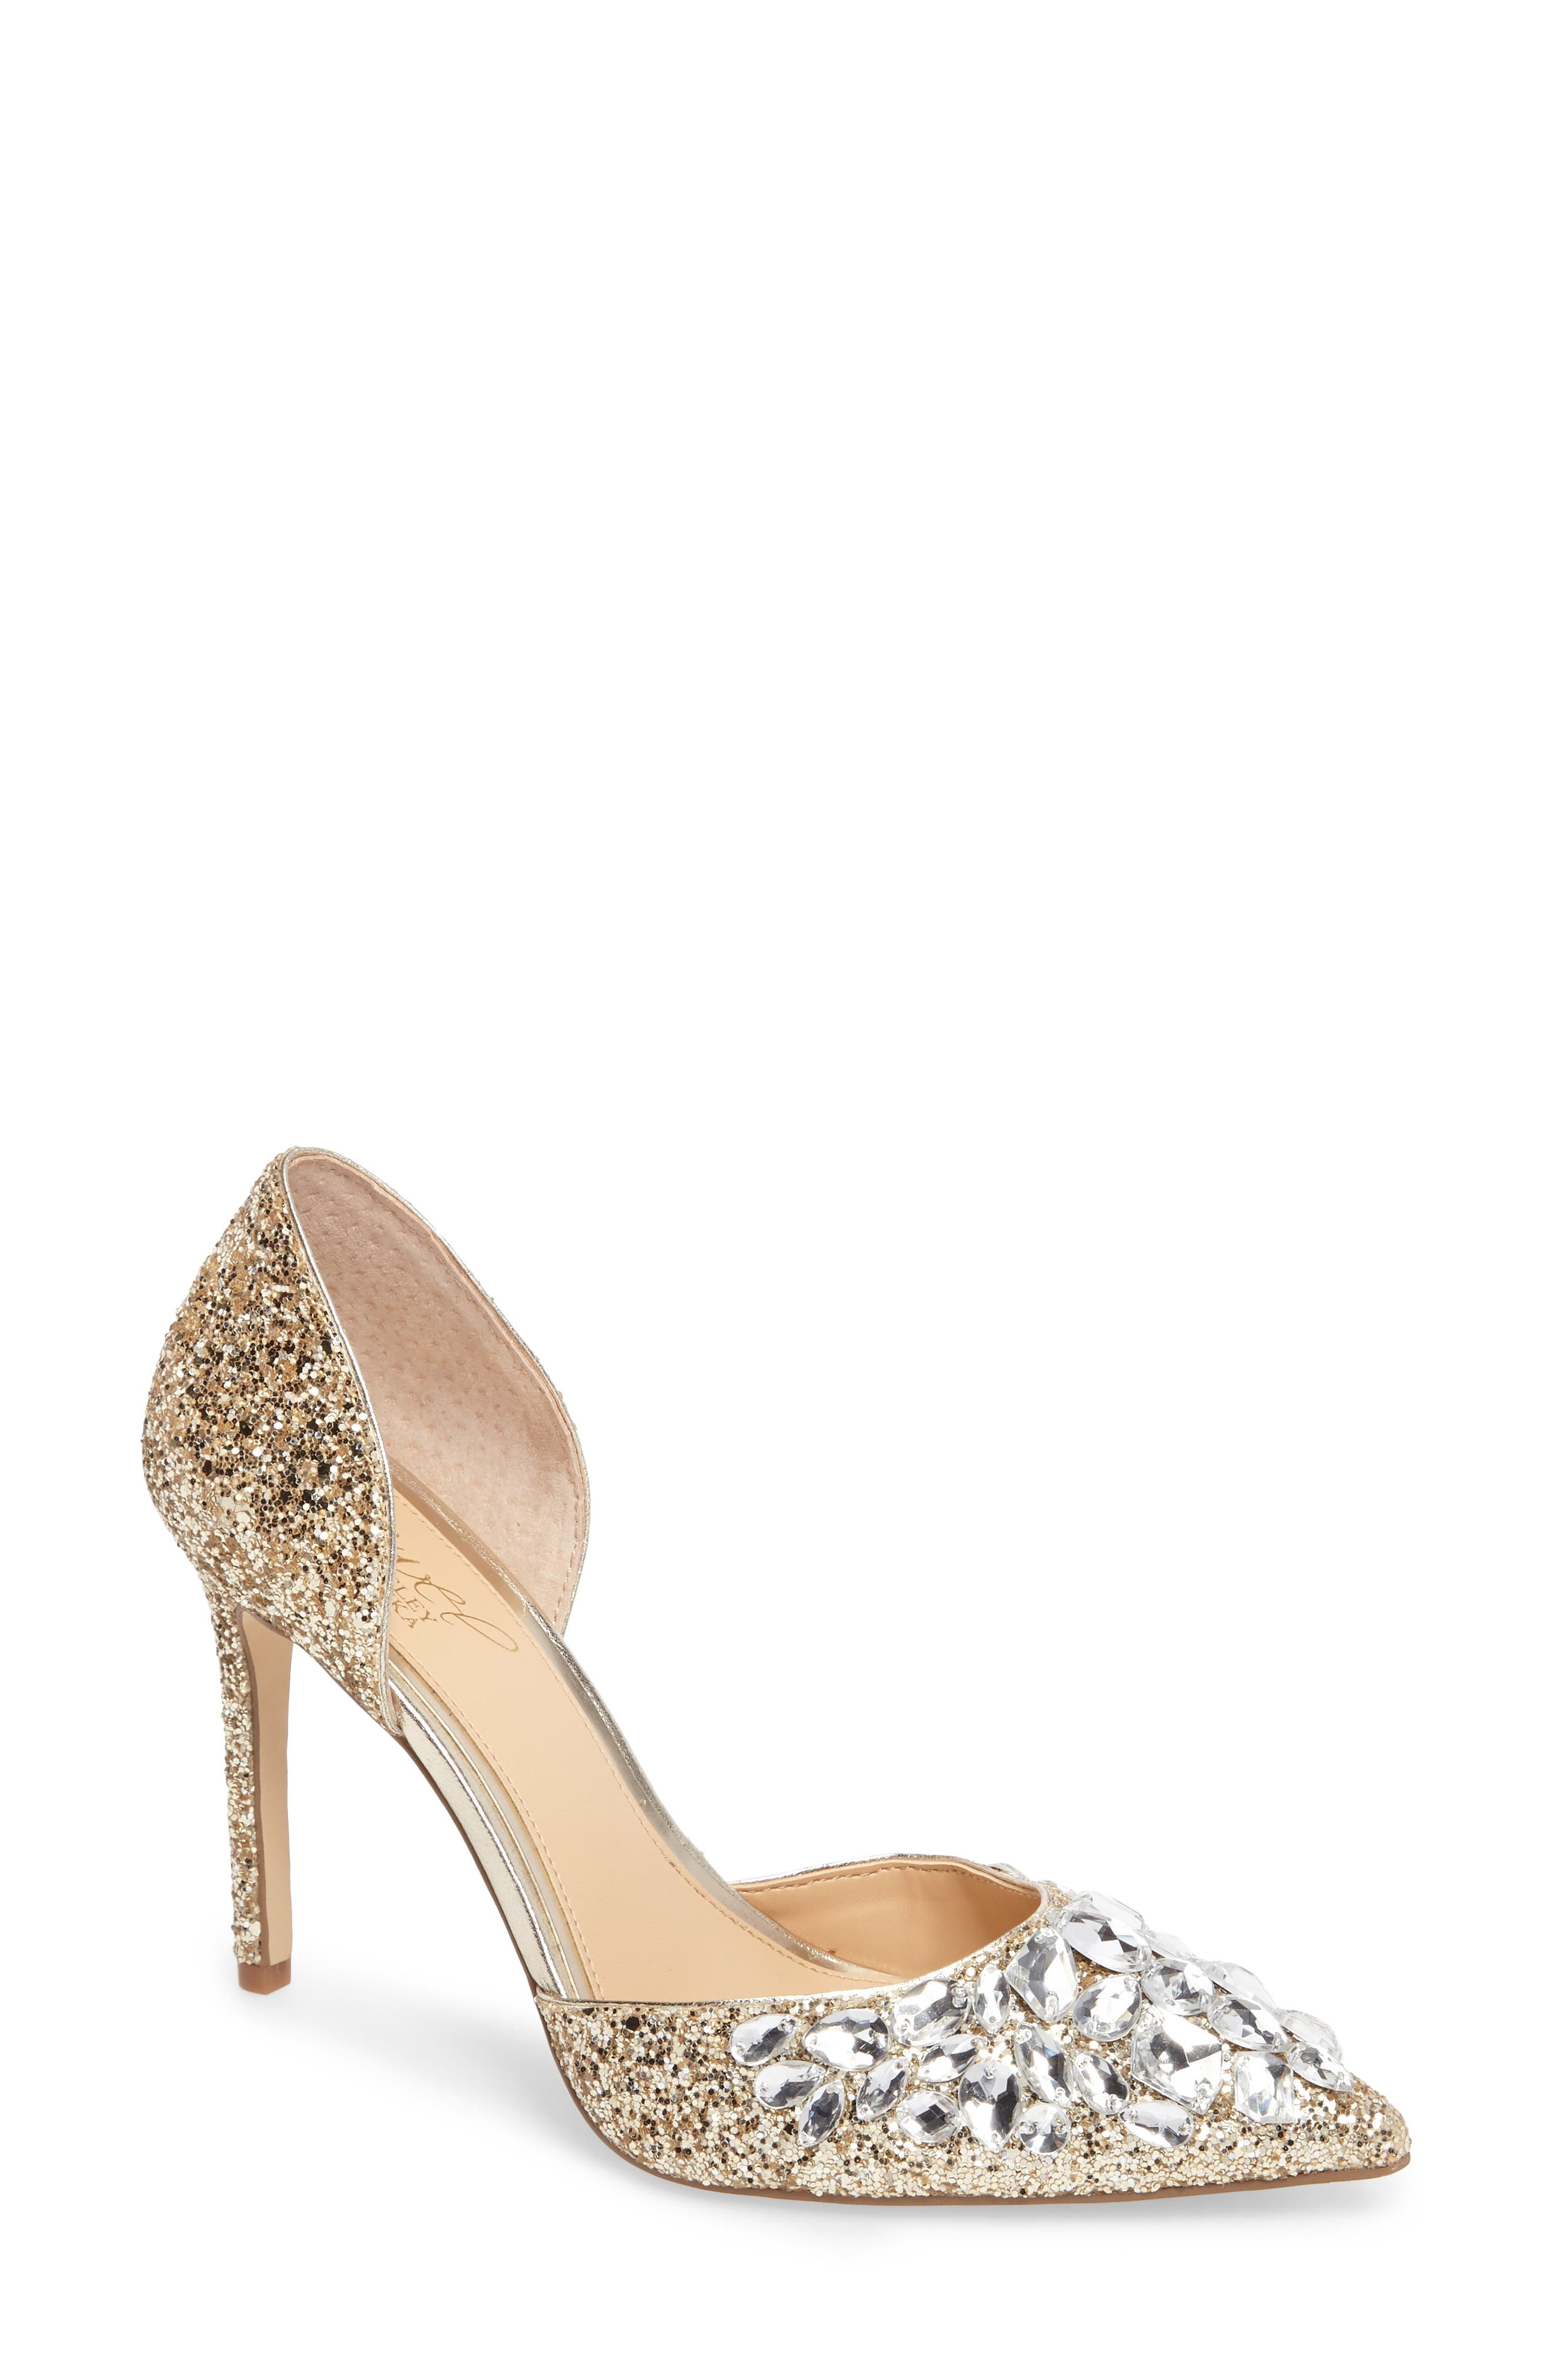 Upton Embellished Pump,                             Main thumbnail 1, color,                             Gold Glitter Fabric